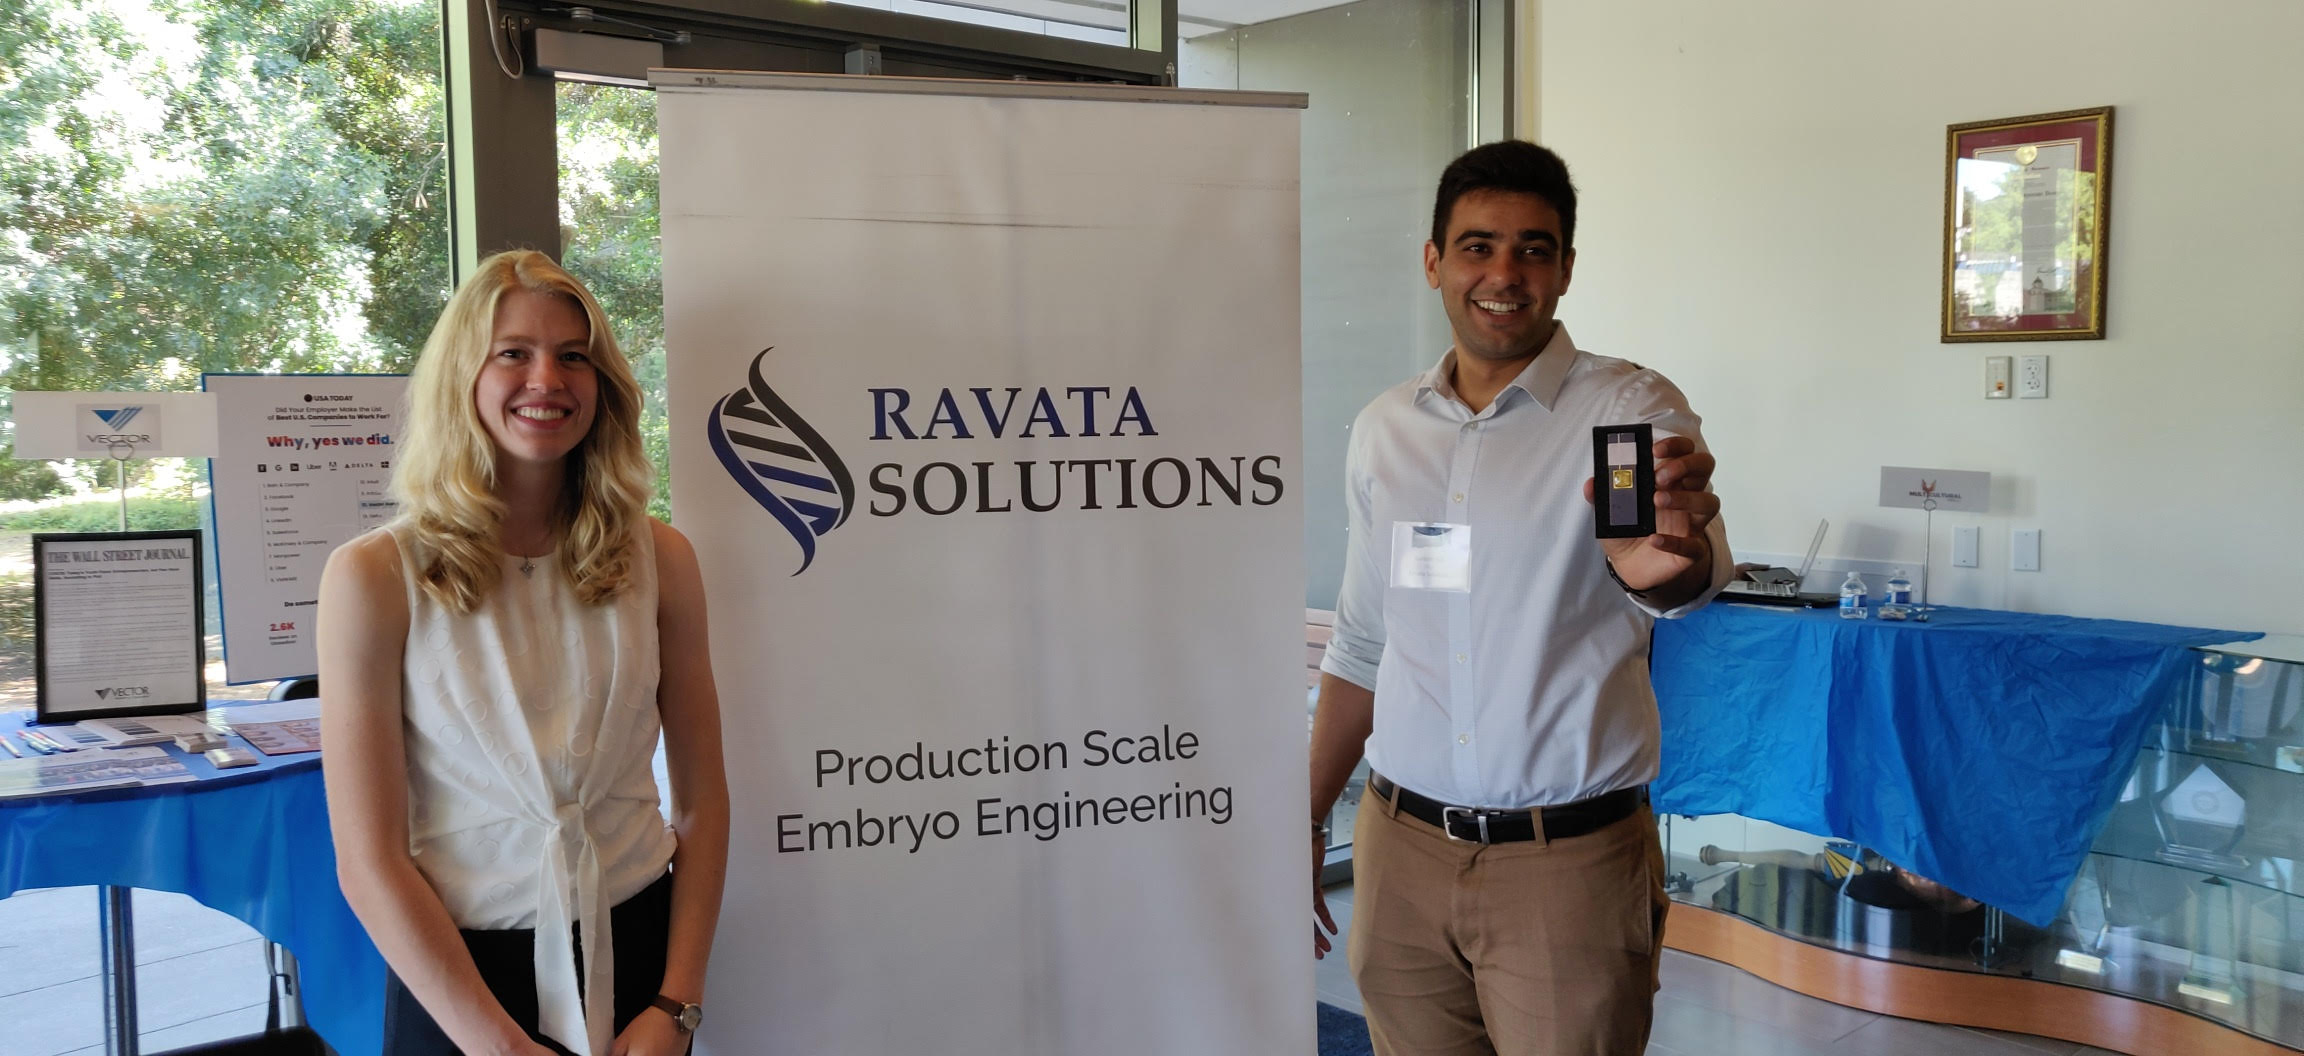 Career Fair Ravata Solutions.jpg